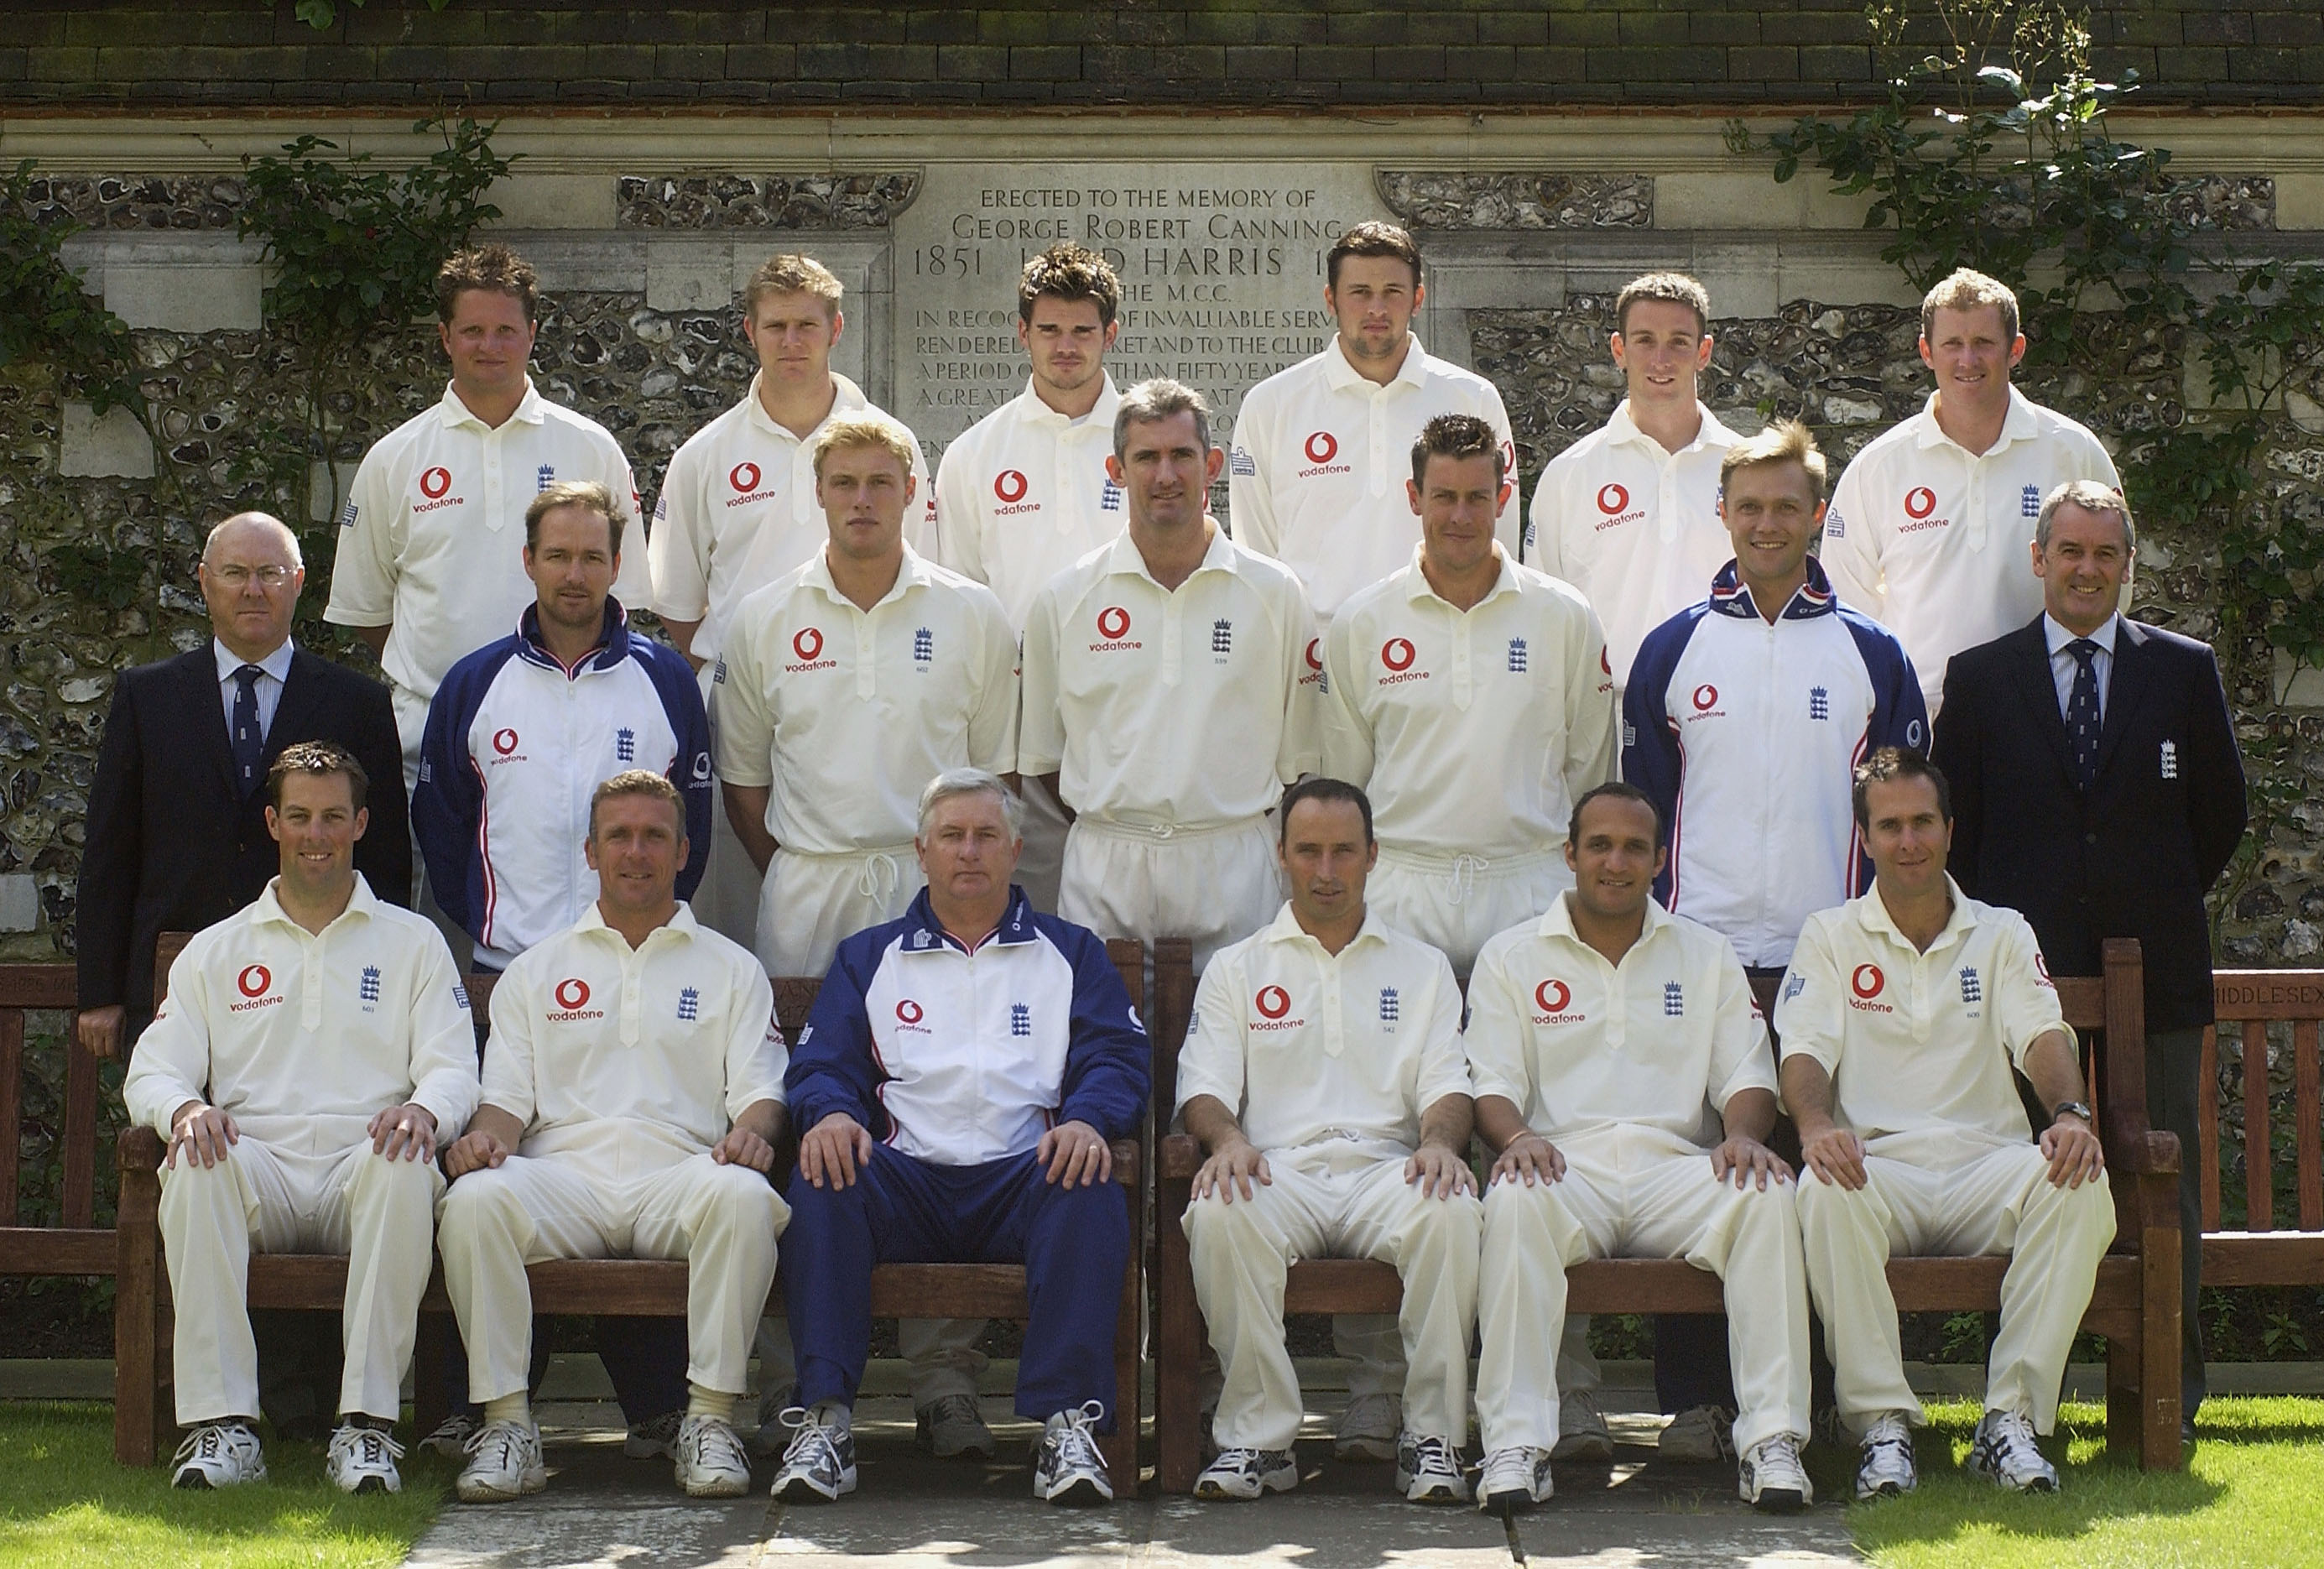 Image of James Anderson's first England squad photo